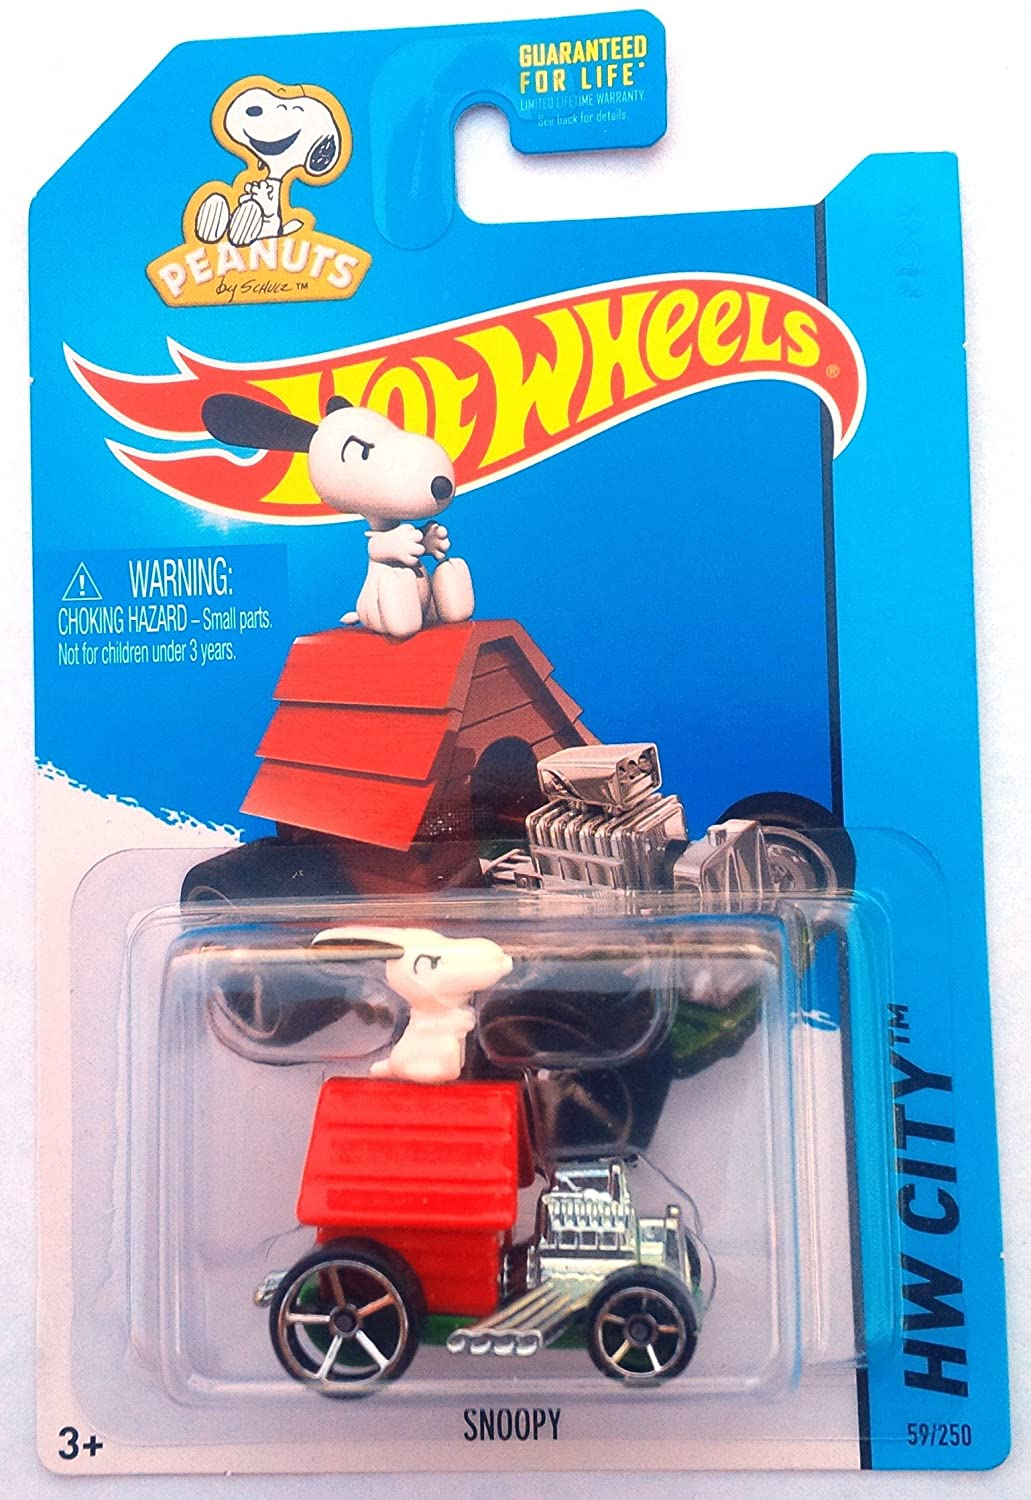 amazoncom 2015 hot wheels snoopy with dog house car peanuts charlie brown charles schulz vehicle 59250 toys games - Rare Hot Wheels Cars 2015